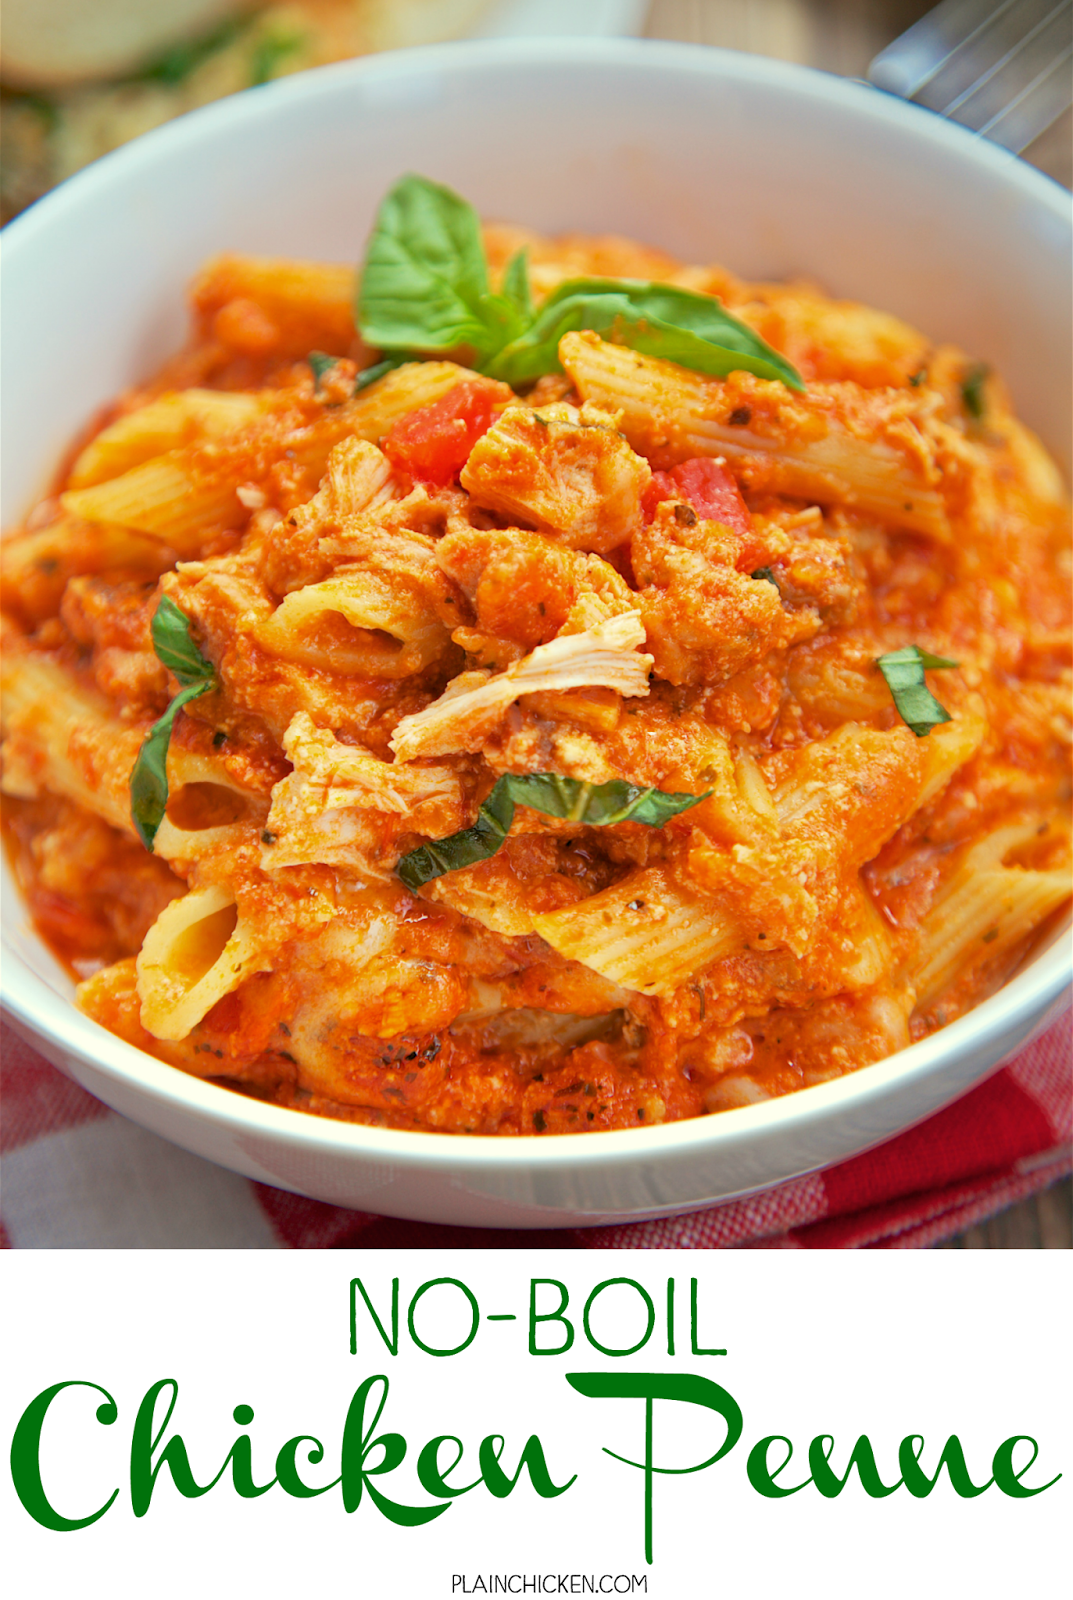 No-Boil Chicken Penne - cooked chicken, pasta sauce, ricotta, basil, mozzarella and parmesan cheese. Everything bakes in the oven, even the pasta! This makes a lot. We ate it for dinner and lunch the next day. It was equally delicious reheated. Serve with with some crusty garlic bread and a salad for an easy weeknight meal! The whole family gobbled this up!